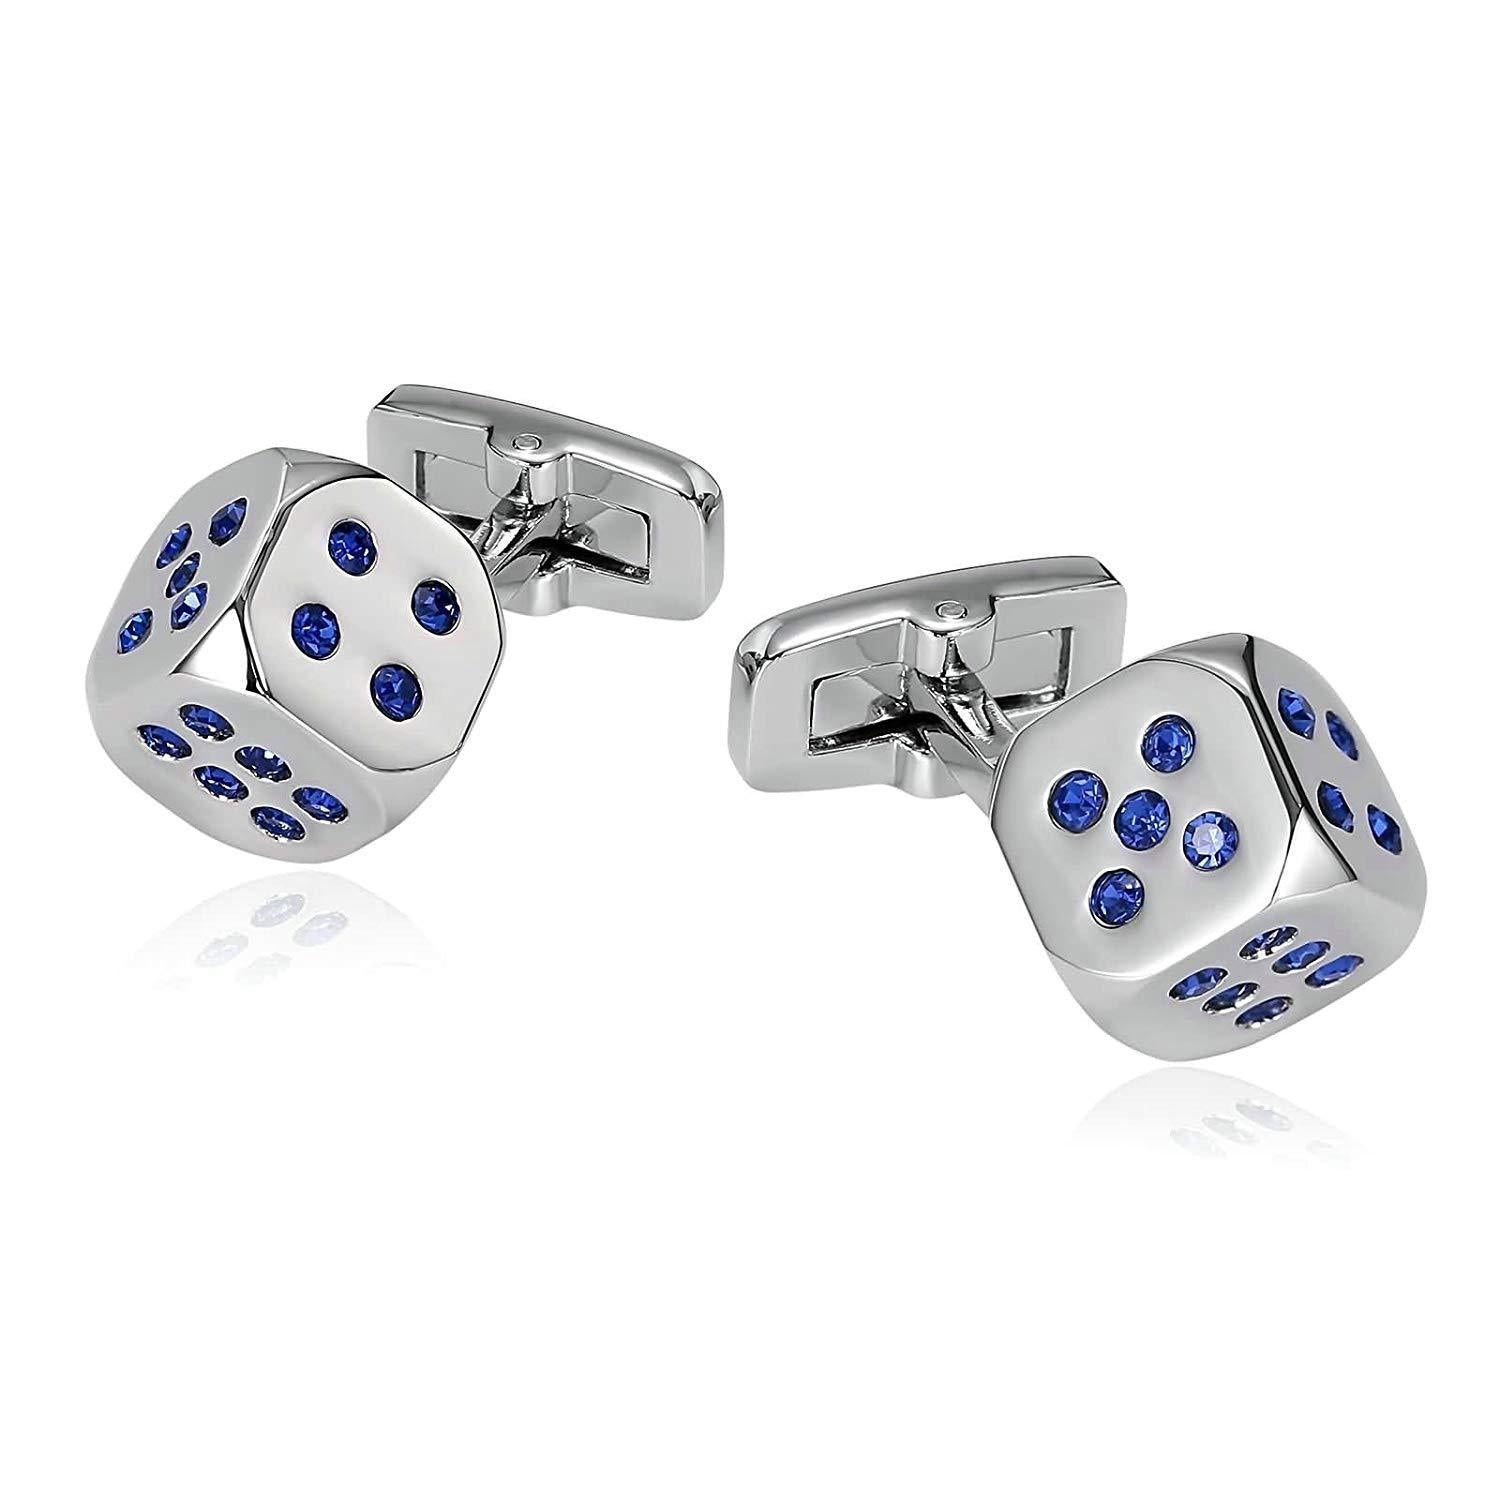 Mens Cufflinks Stainless Steel Lucky Dice Crystal Silver Blue Shirt 1.3X1.3CM Xmas Gift Box Aooaz